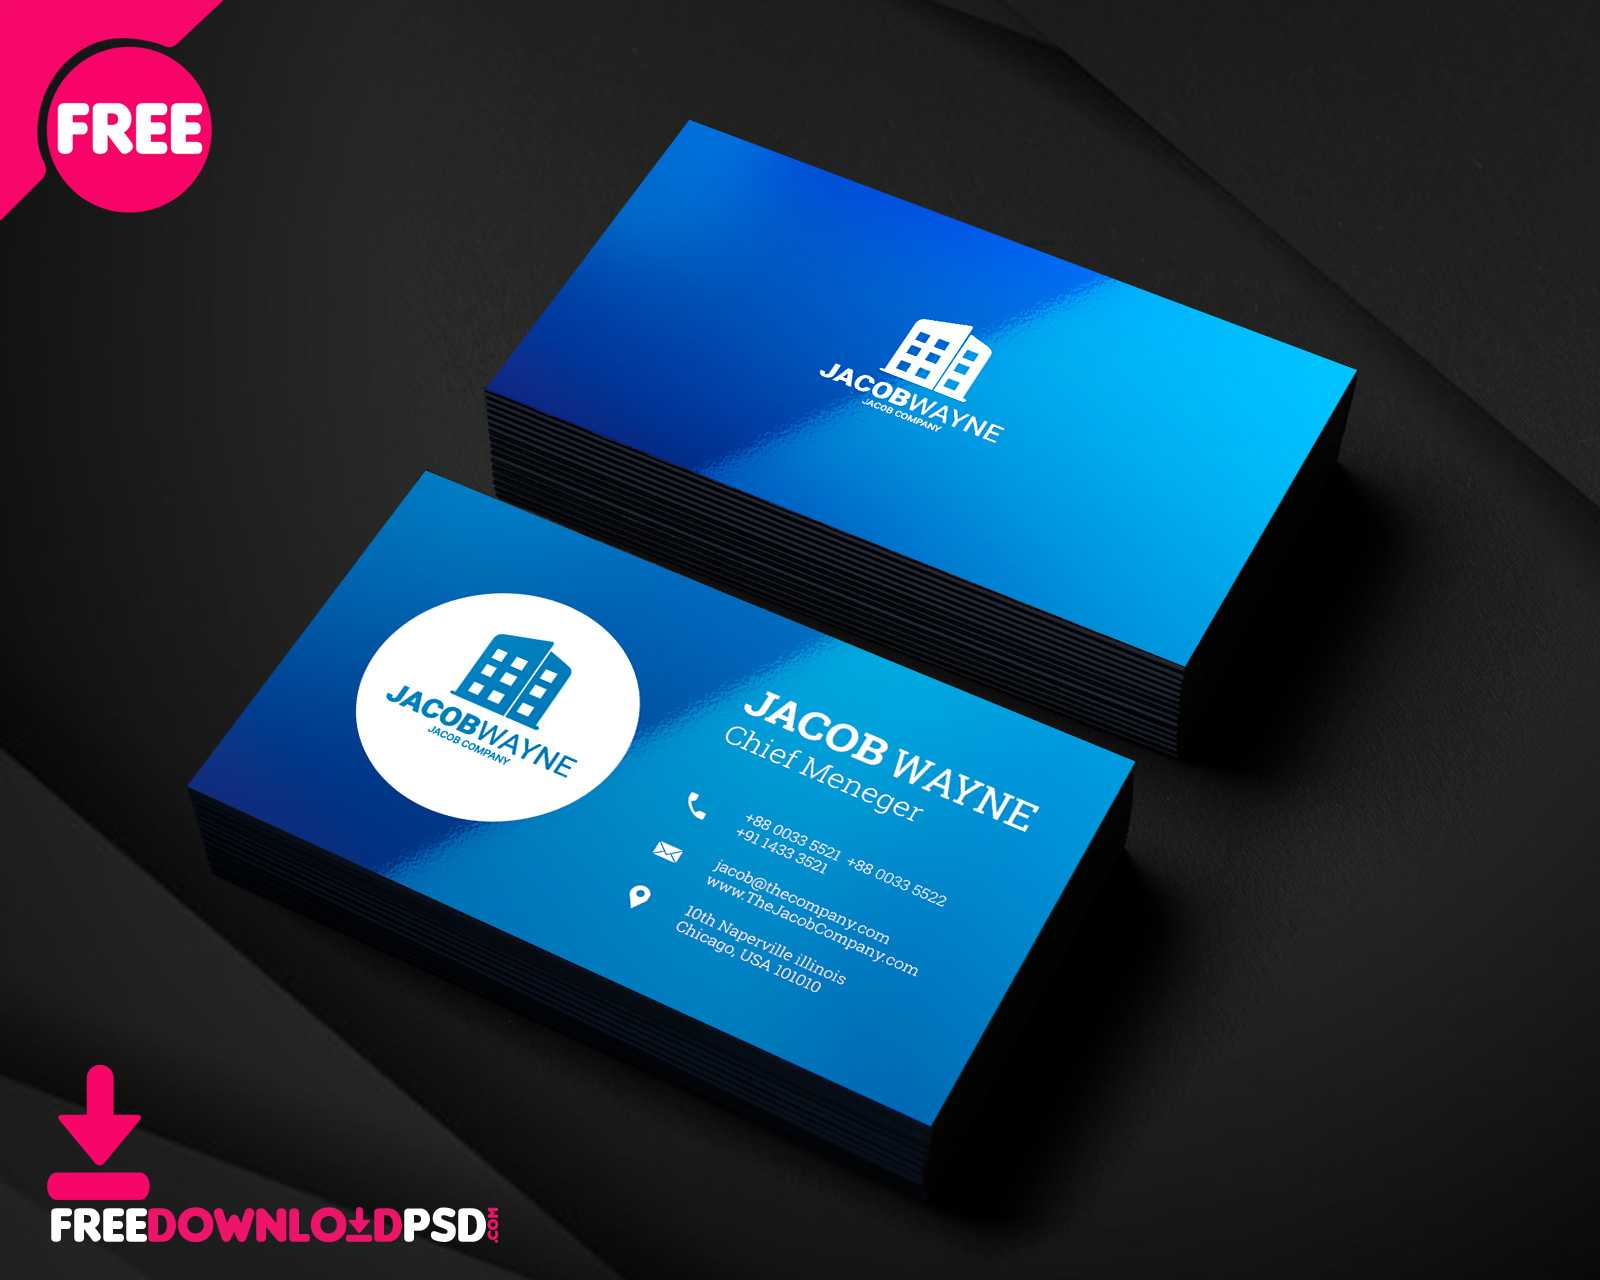 012 Photoshop Business Card Template Ideas Free Real Estate Intended For Photoshop Business Card Template With Bleed